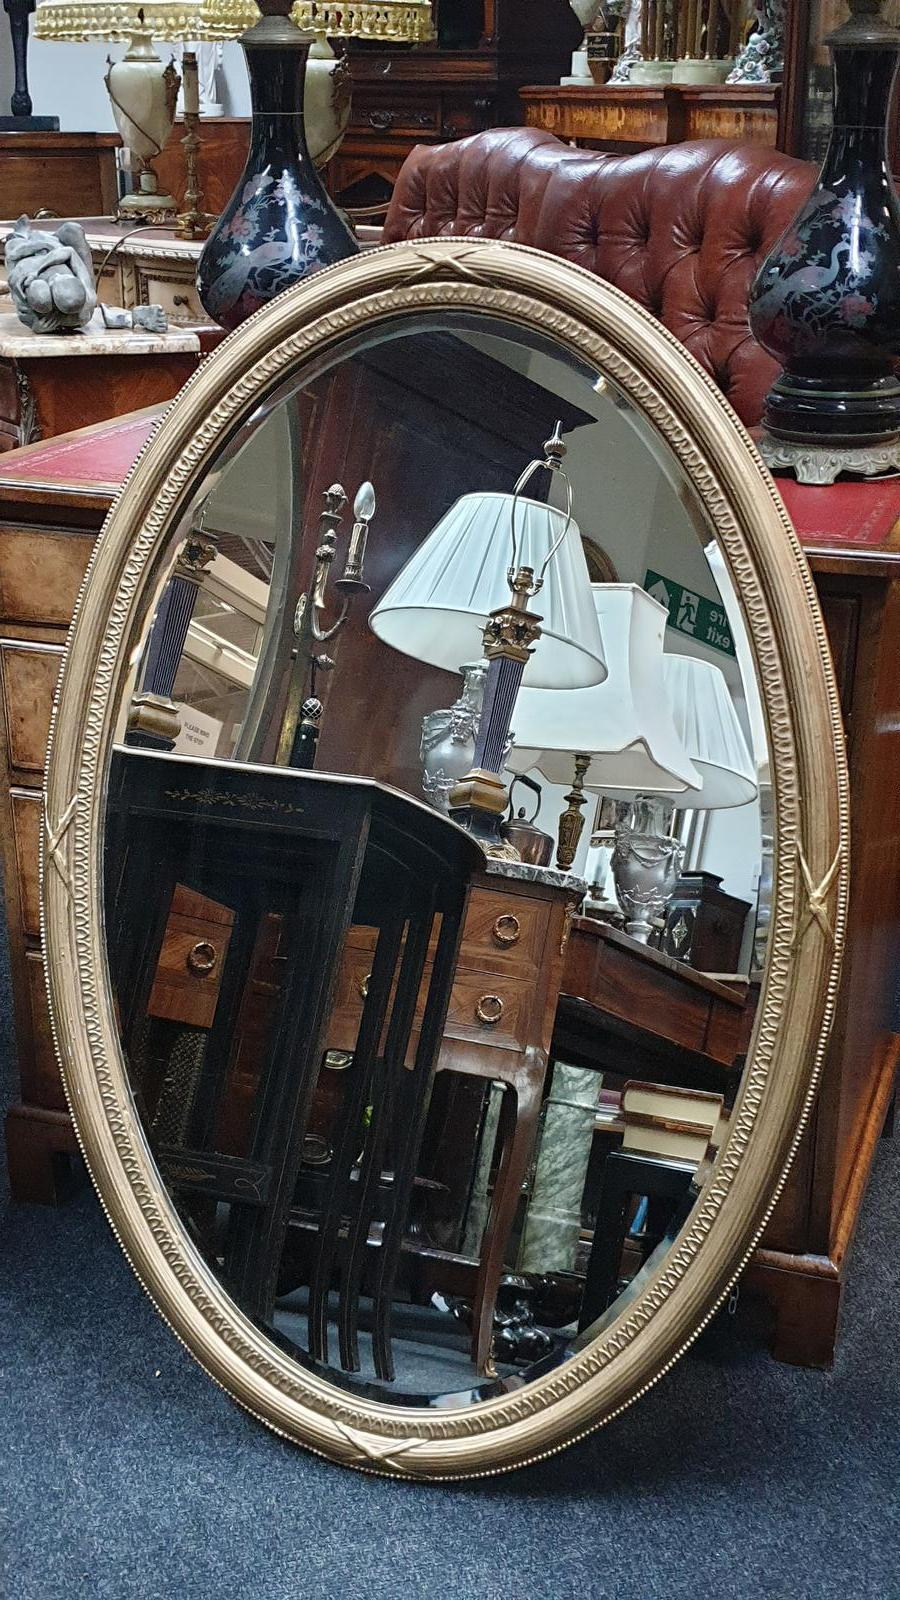 Large Edwardian Oval Gilt Wall Mirror (1 of 1)